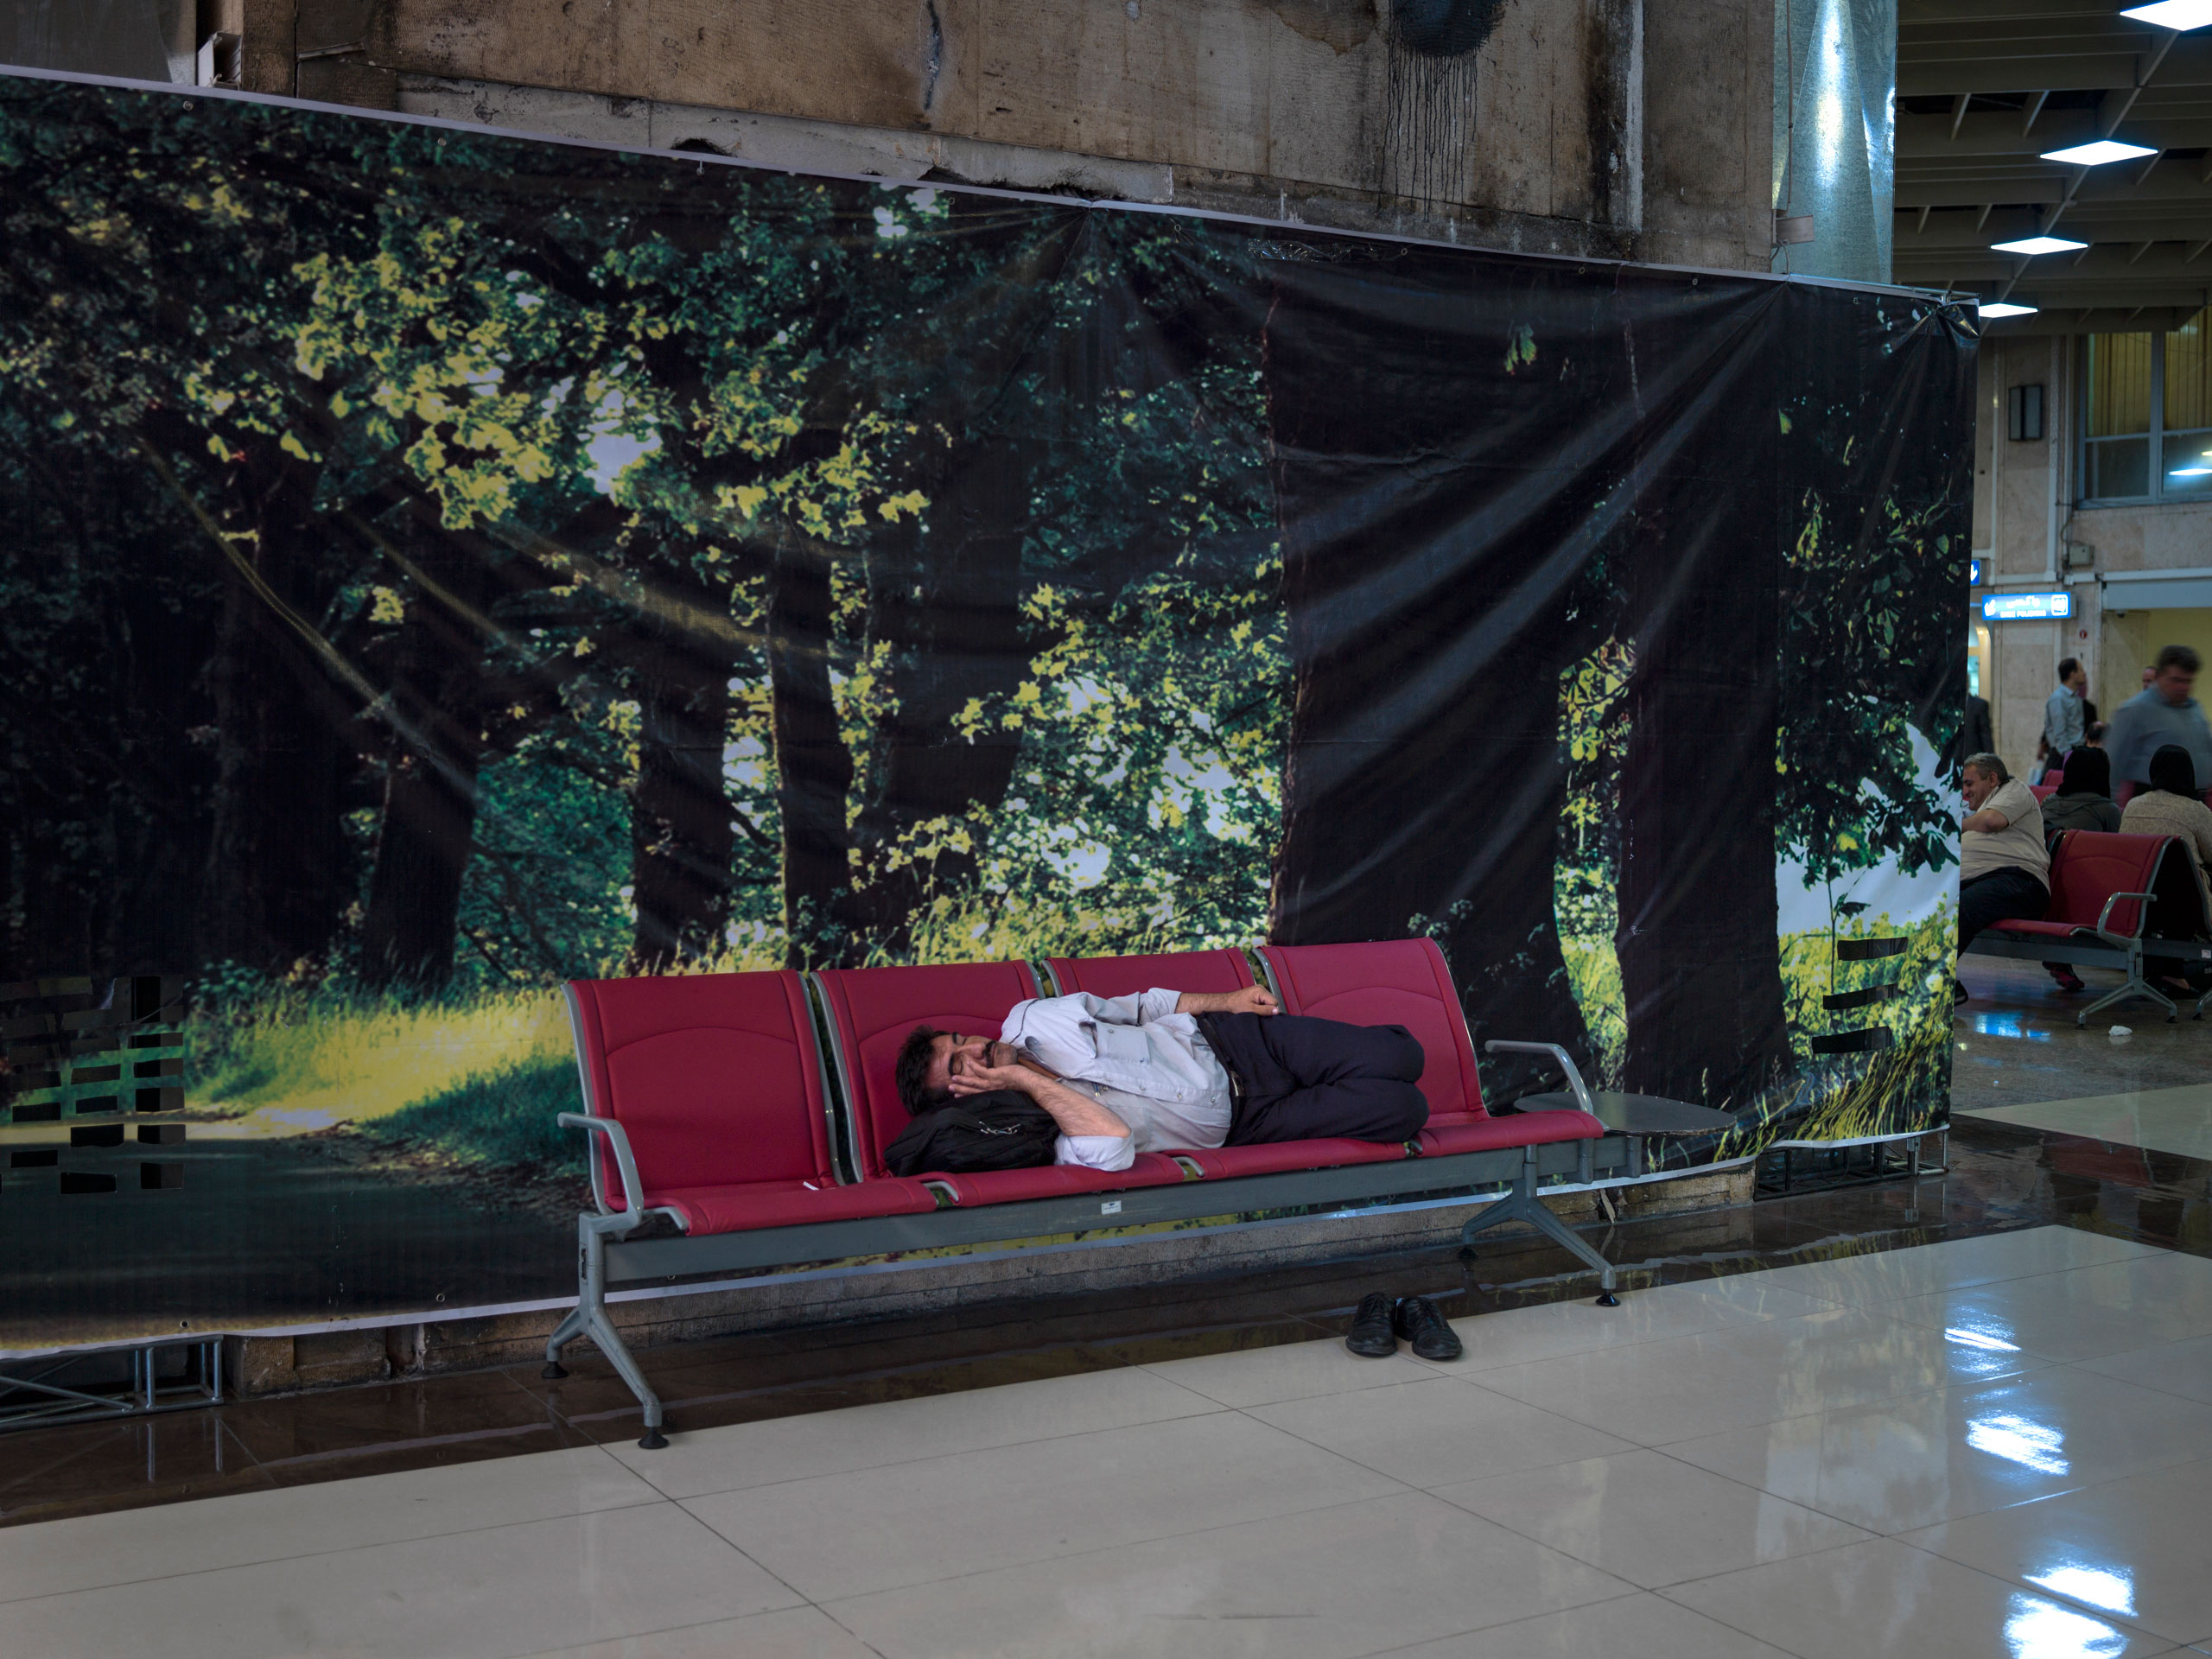 A man sleeps on a bench in Tehran's domestic Mehrabad airport. Following the nuclear agreement,  Iran hopes to upgrade its fleet of aging aircraft.